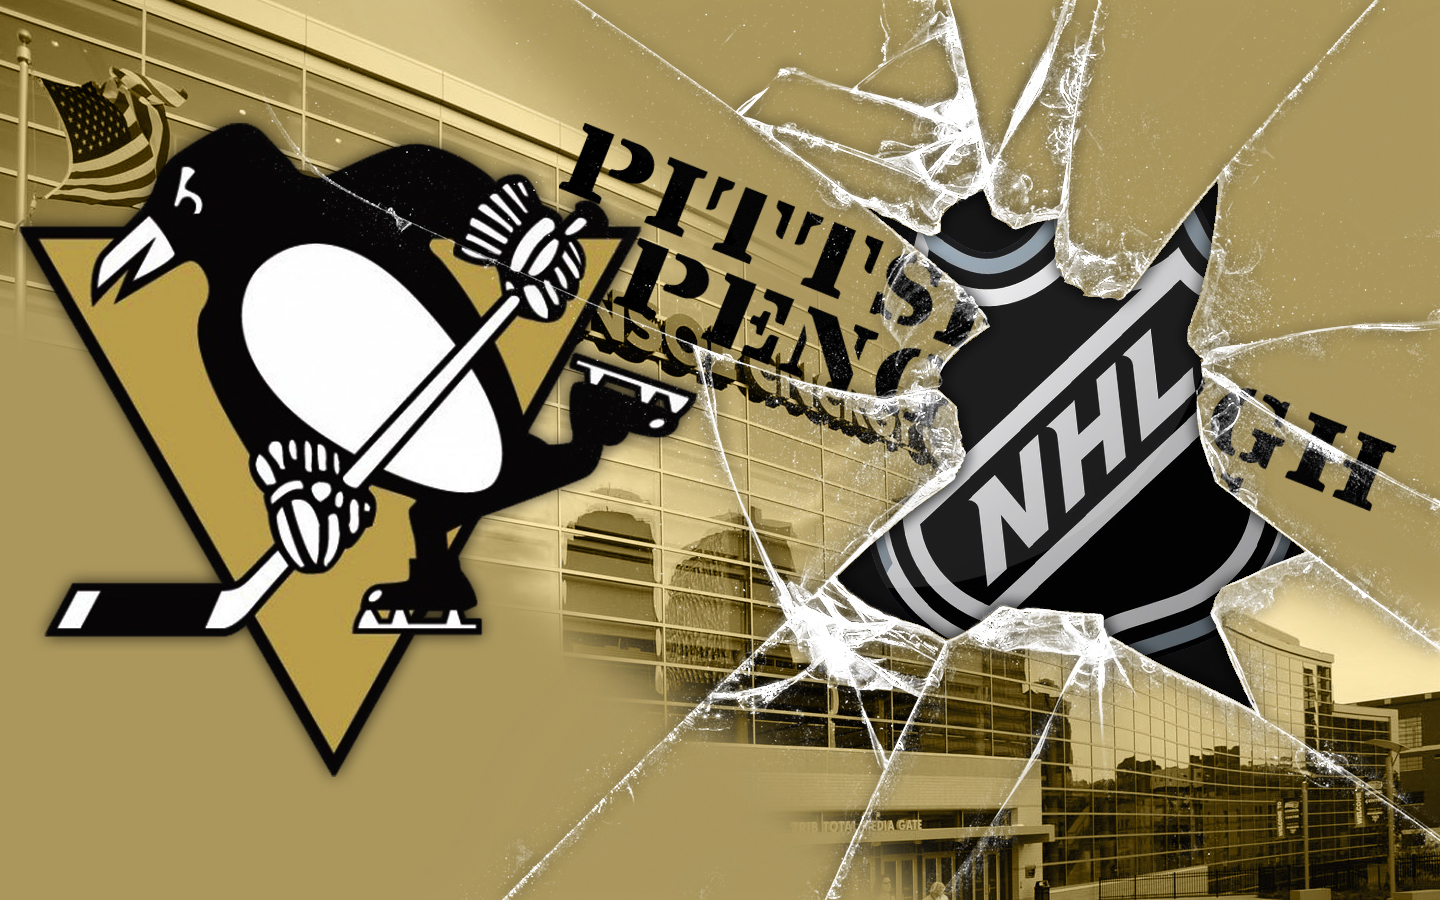 pittsburgh penguins hd wallpaper 1600x900 wallpapersafari